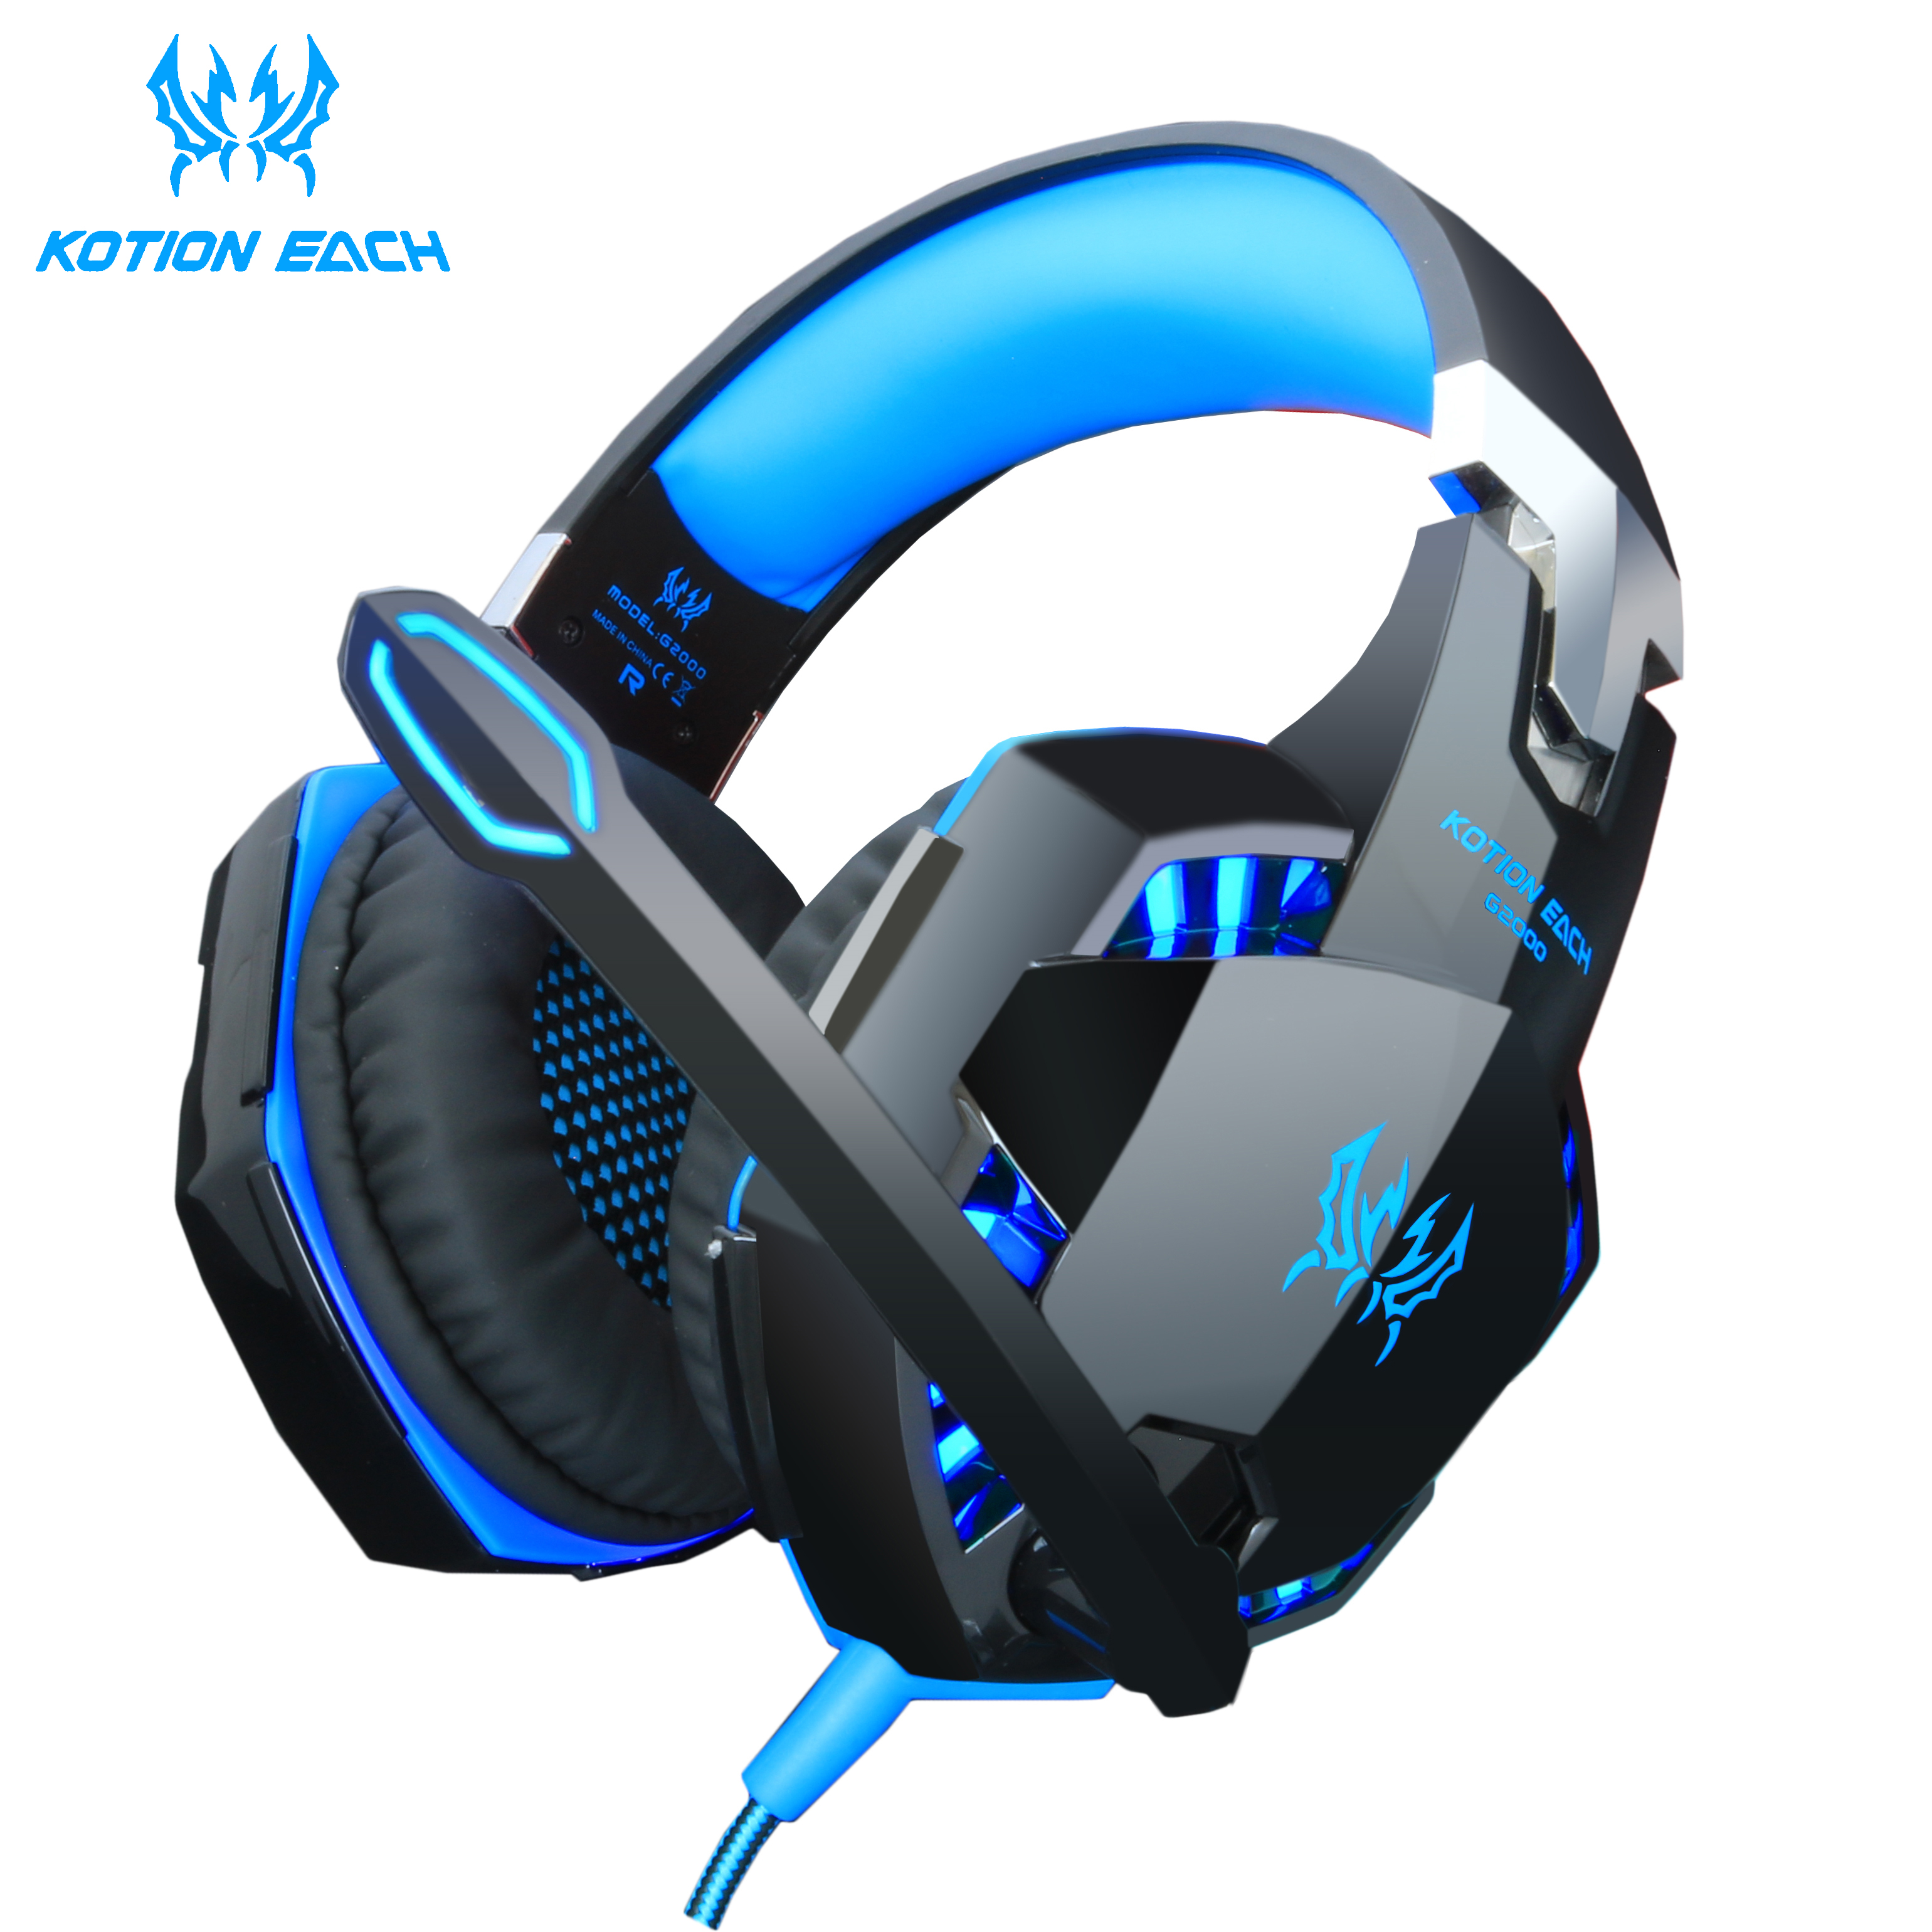 Headset over-ear Wired Game Earphones Gaming Headphones Deep bass Stereo Casque with Microphone for PS4 new xbox PC Laptop gamer(China)